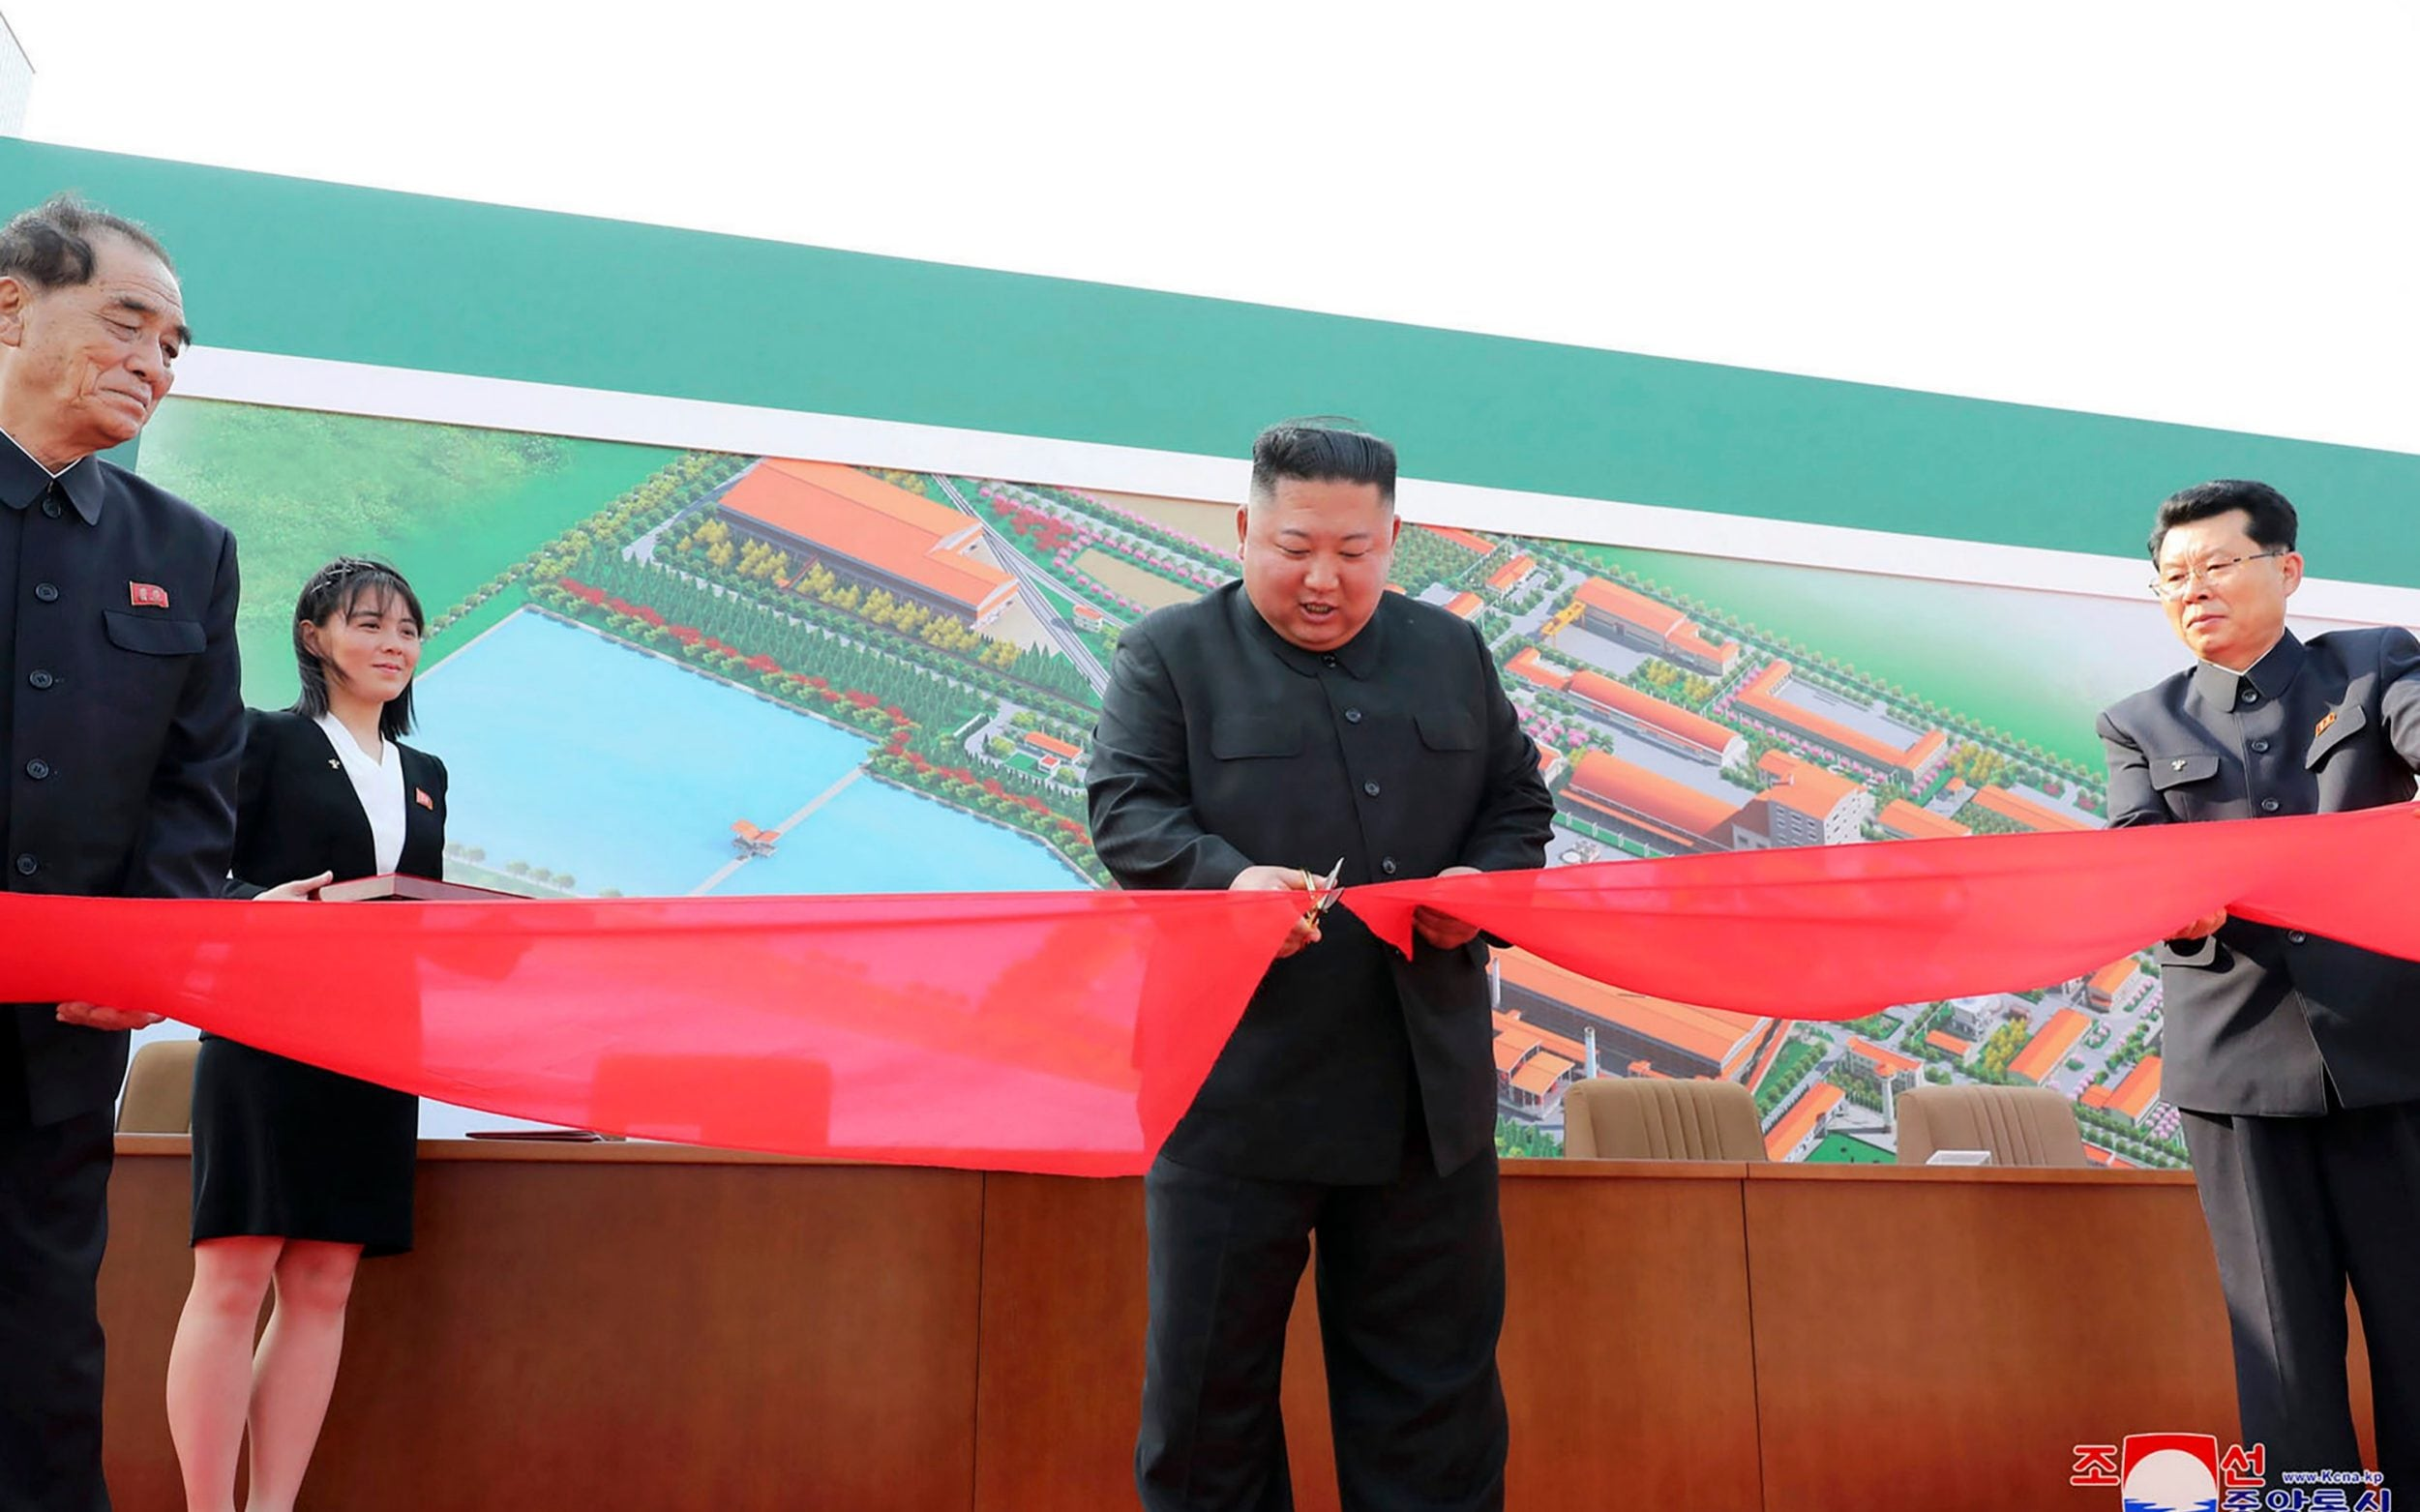 North Korea tries to end speculation over supreme leaders health with ribbon cutting pictures